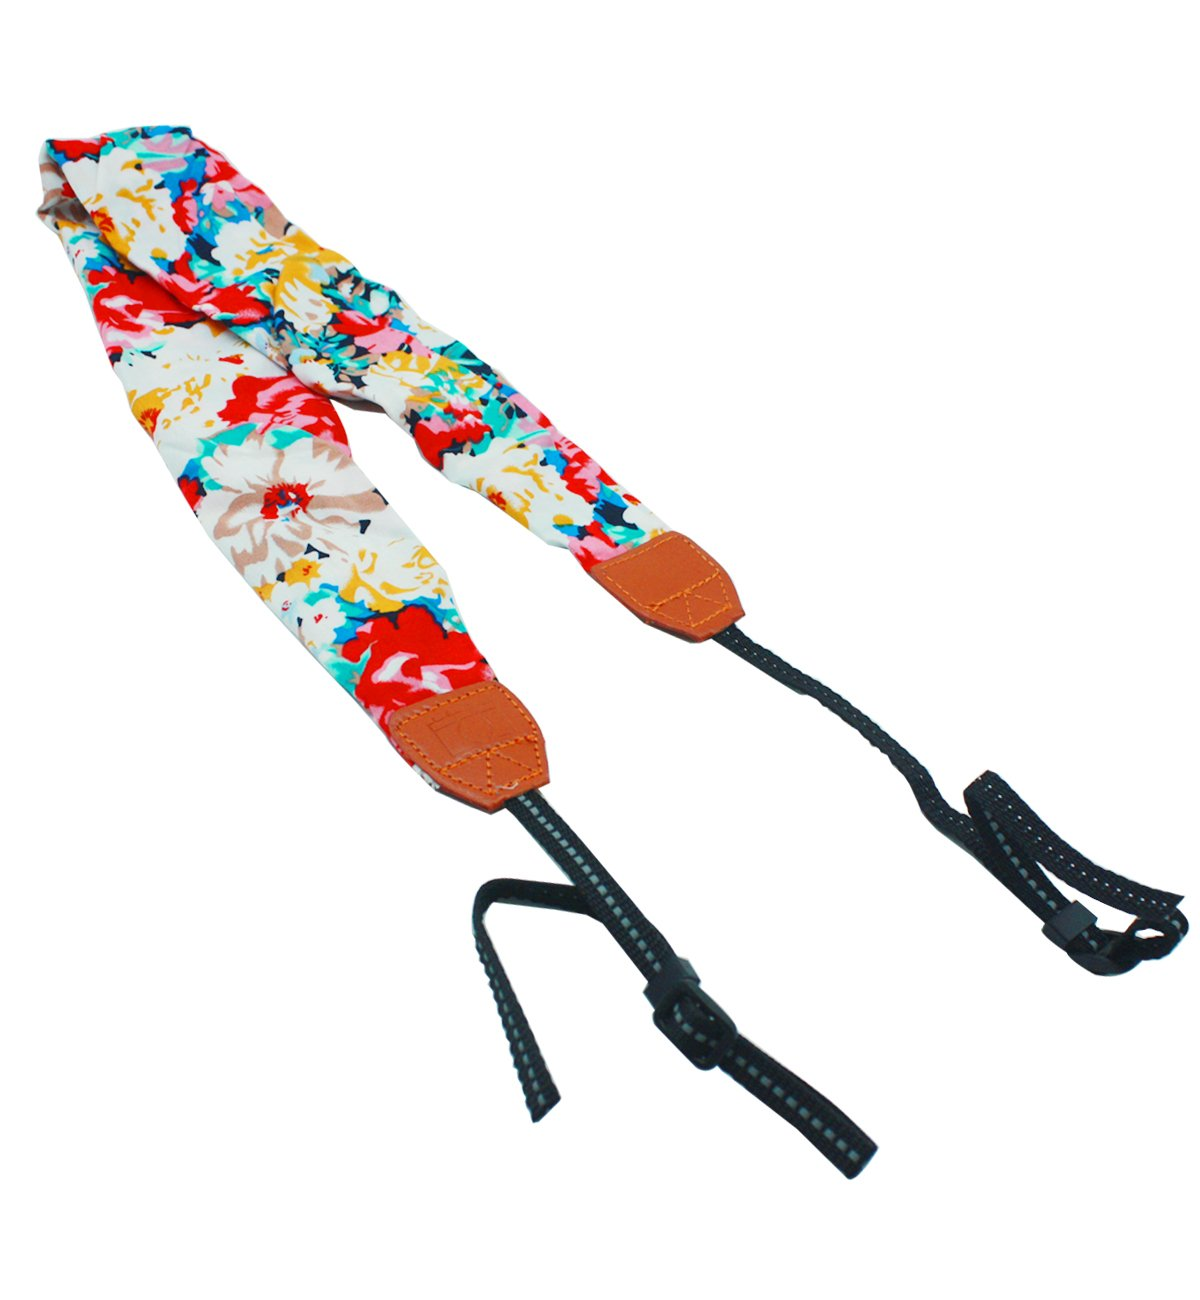 CEARI Floral Scarf DSLR Camera Neck Strap for Canon Nikon Sony Olympus Fujifilm Digital Camera